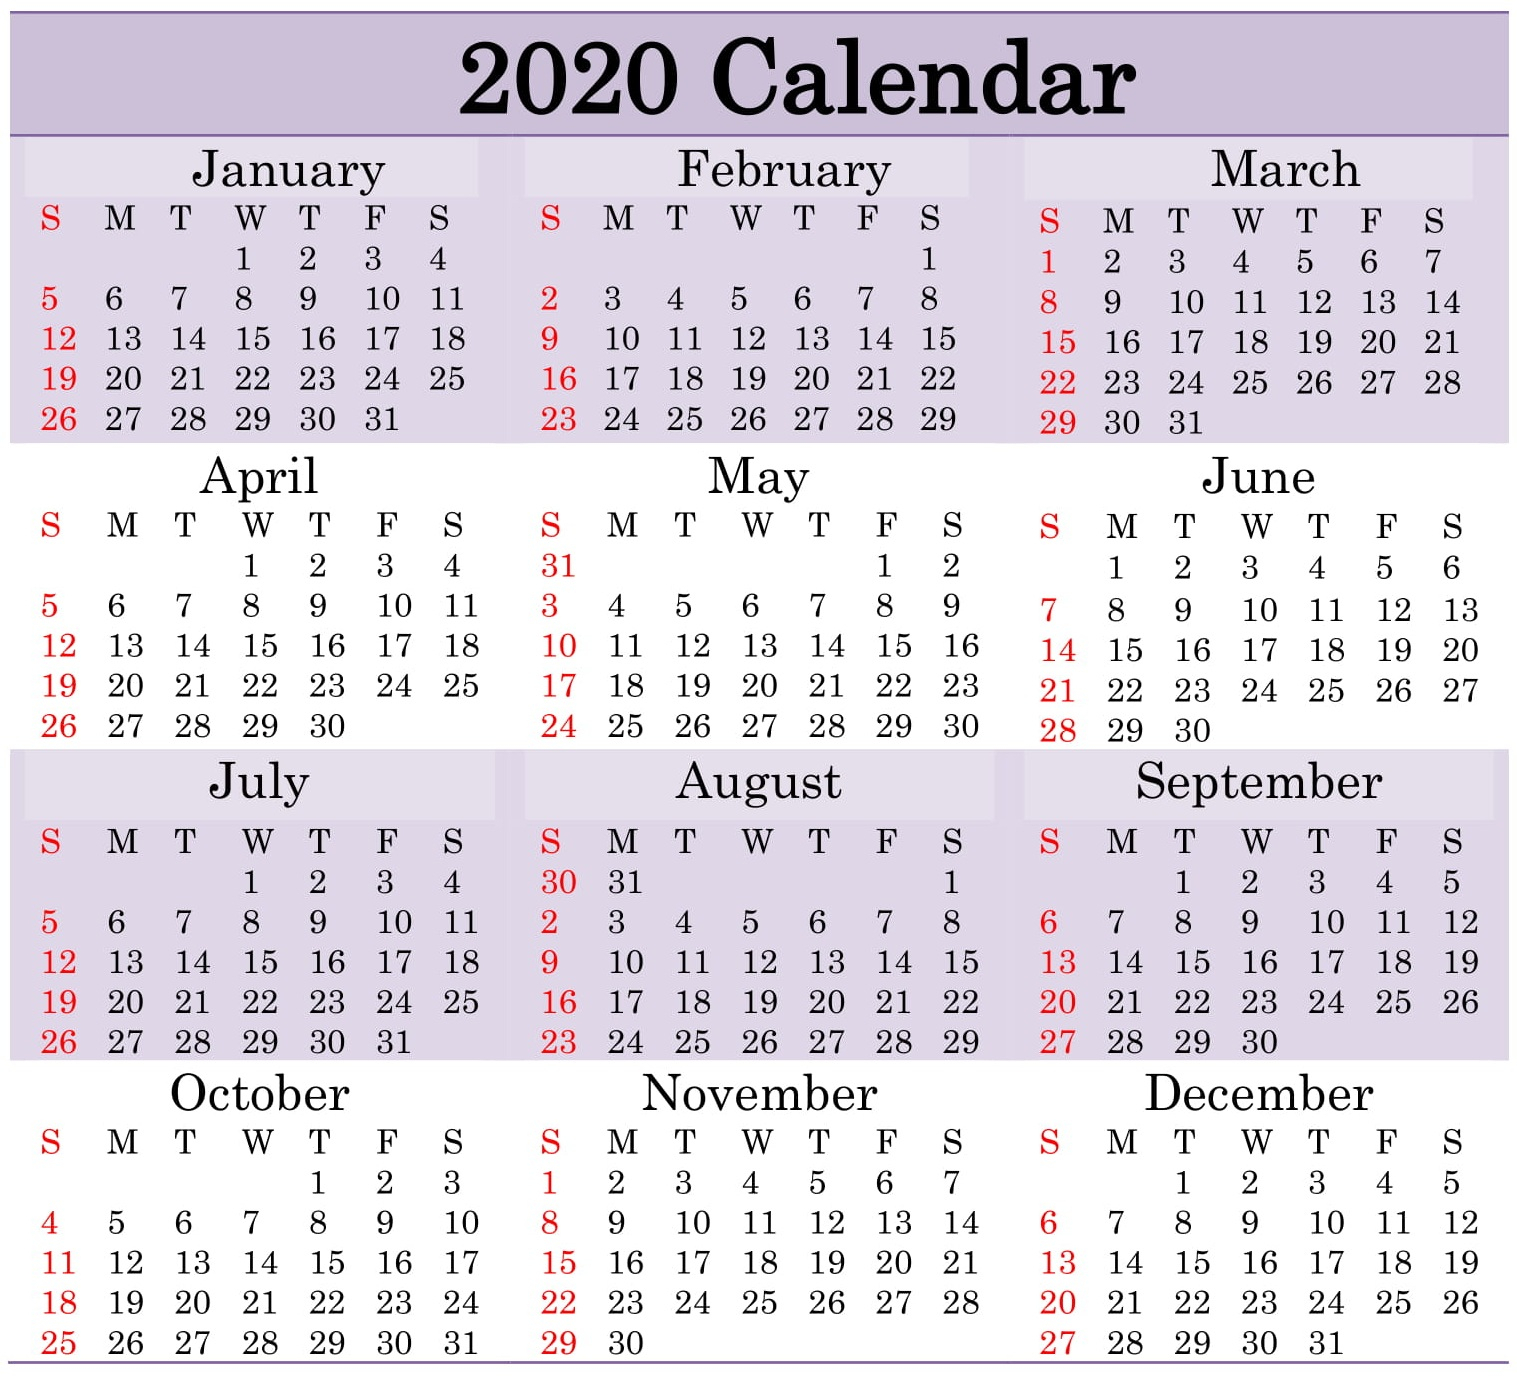 Printable 2020 Calendar Word Document  Latest Printable with Julian Calendar Pdf